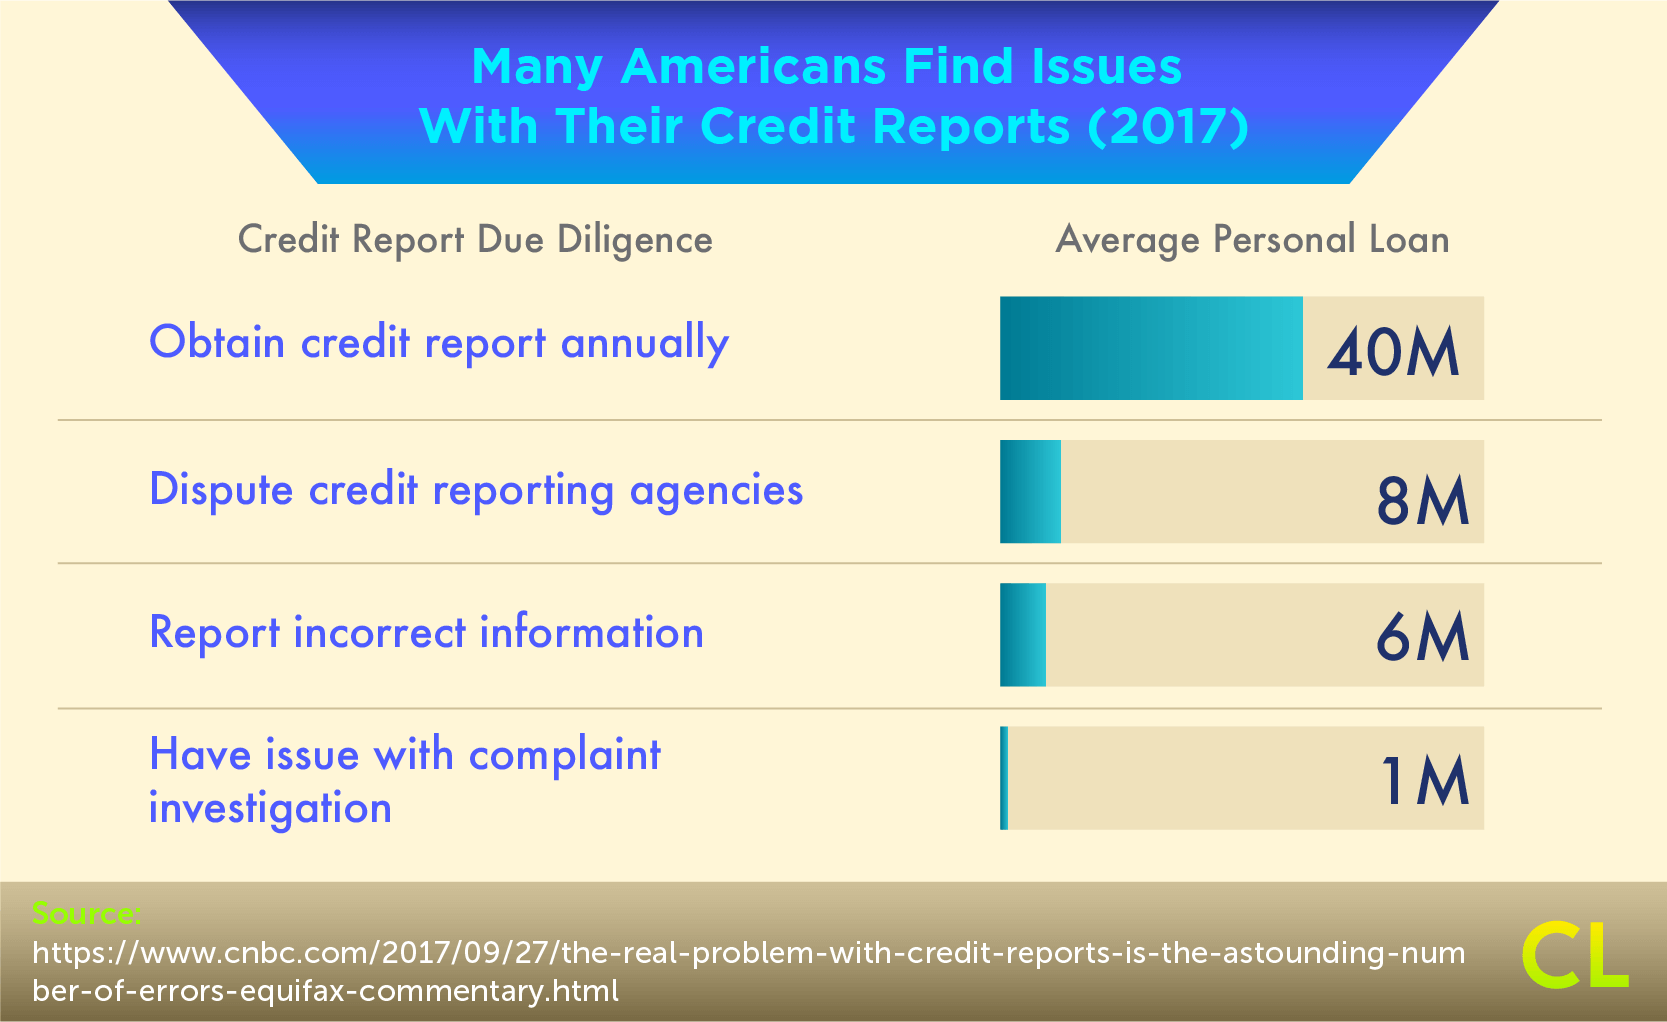 Many Americans Find Issues With Their Credit Reports